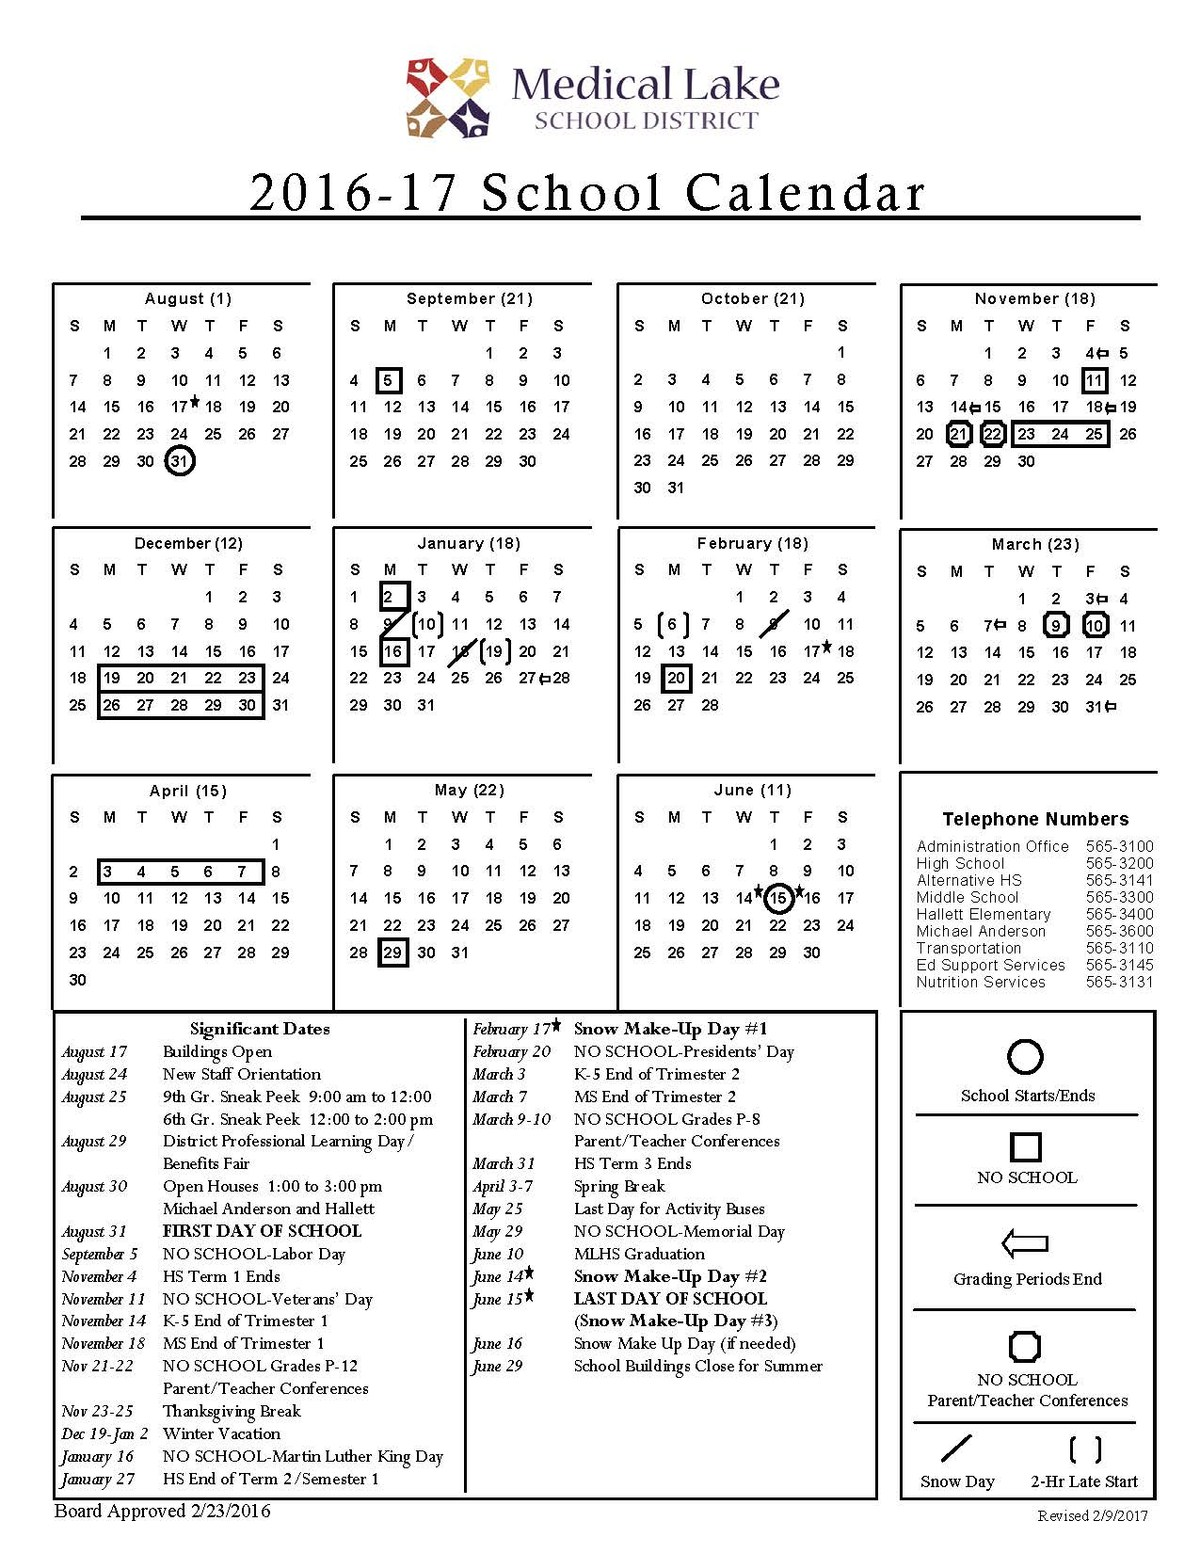 2016.17 School Year Calendar Reflects Make-Up Snow Days